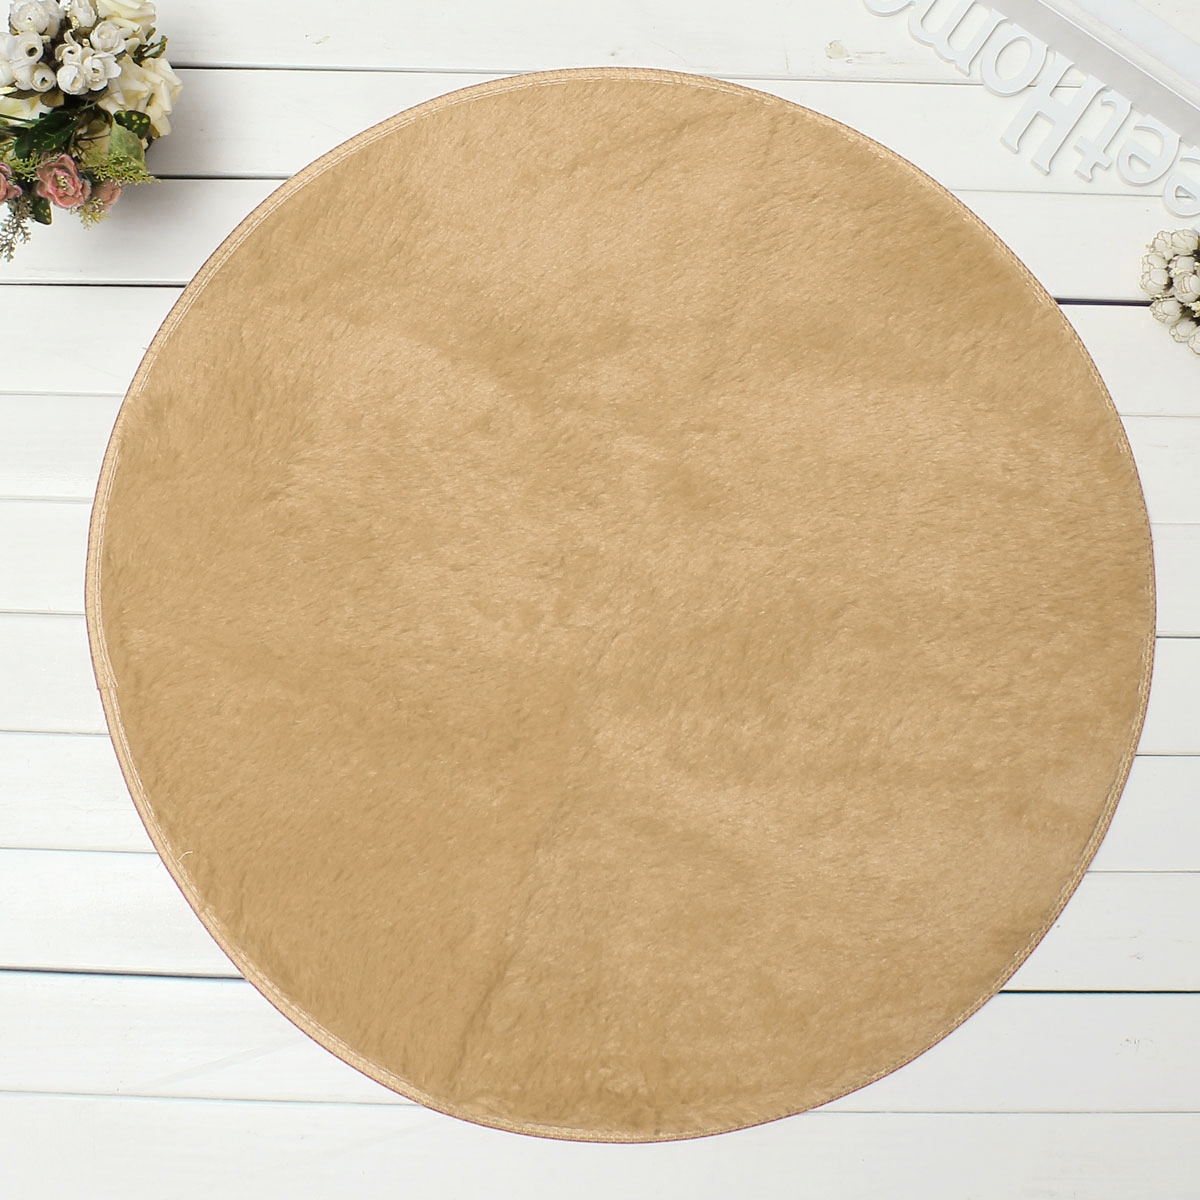 11 Solid Colors Round Circle Circular Modern Shaggy Rugs Mats 80cm With Round Mats Rugs (Image 1 of 15)